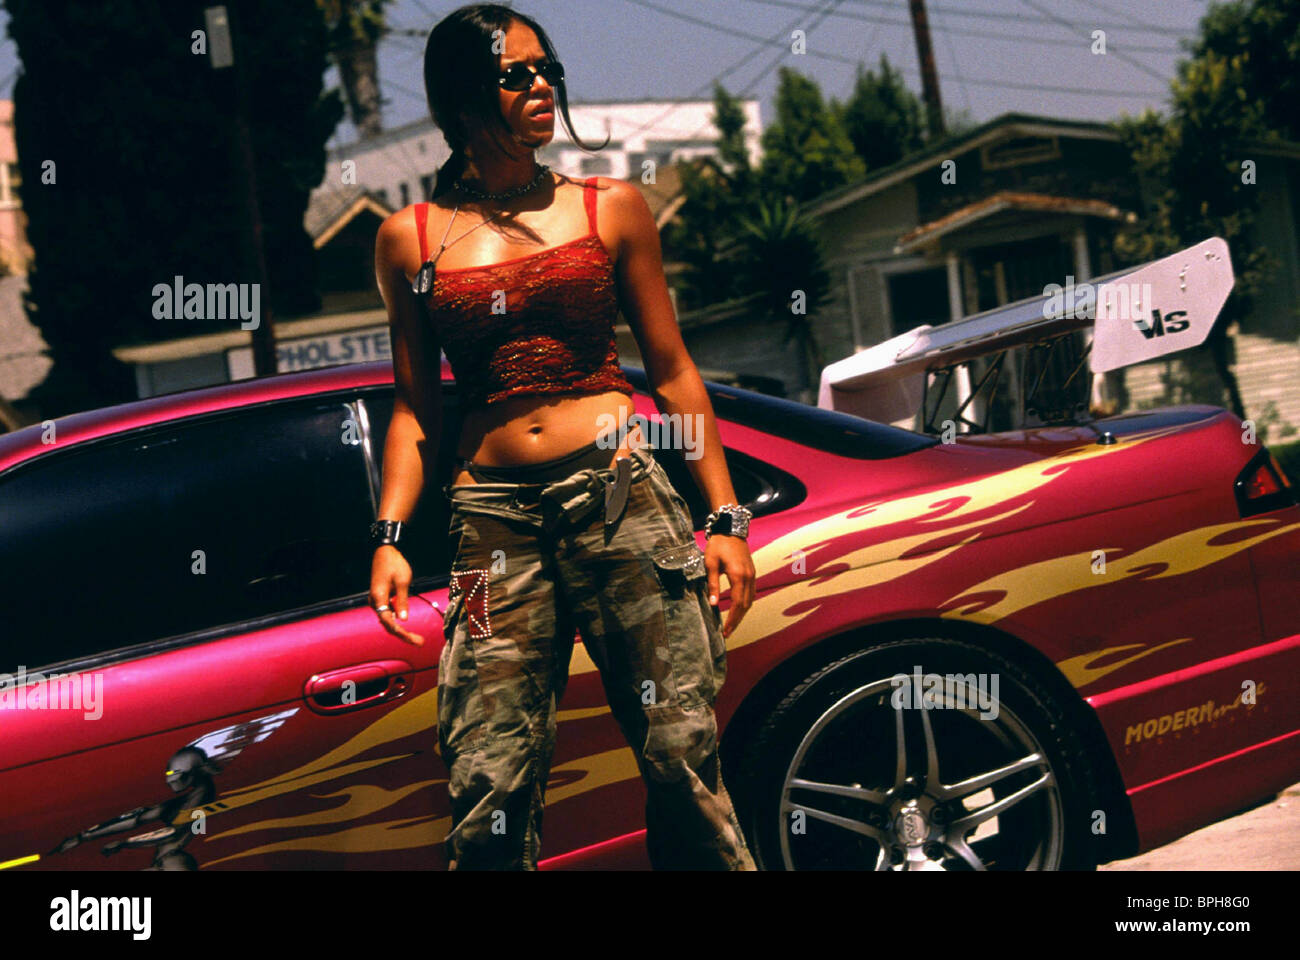 Michelle Rodriguez The Fast And The Furious 2001 Stock Photo Alamy